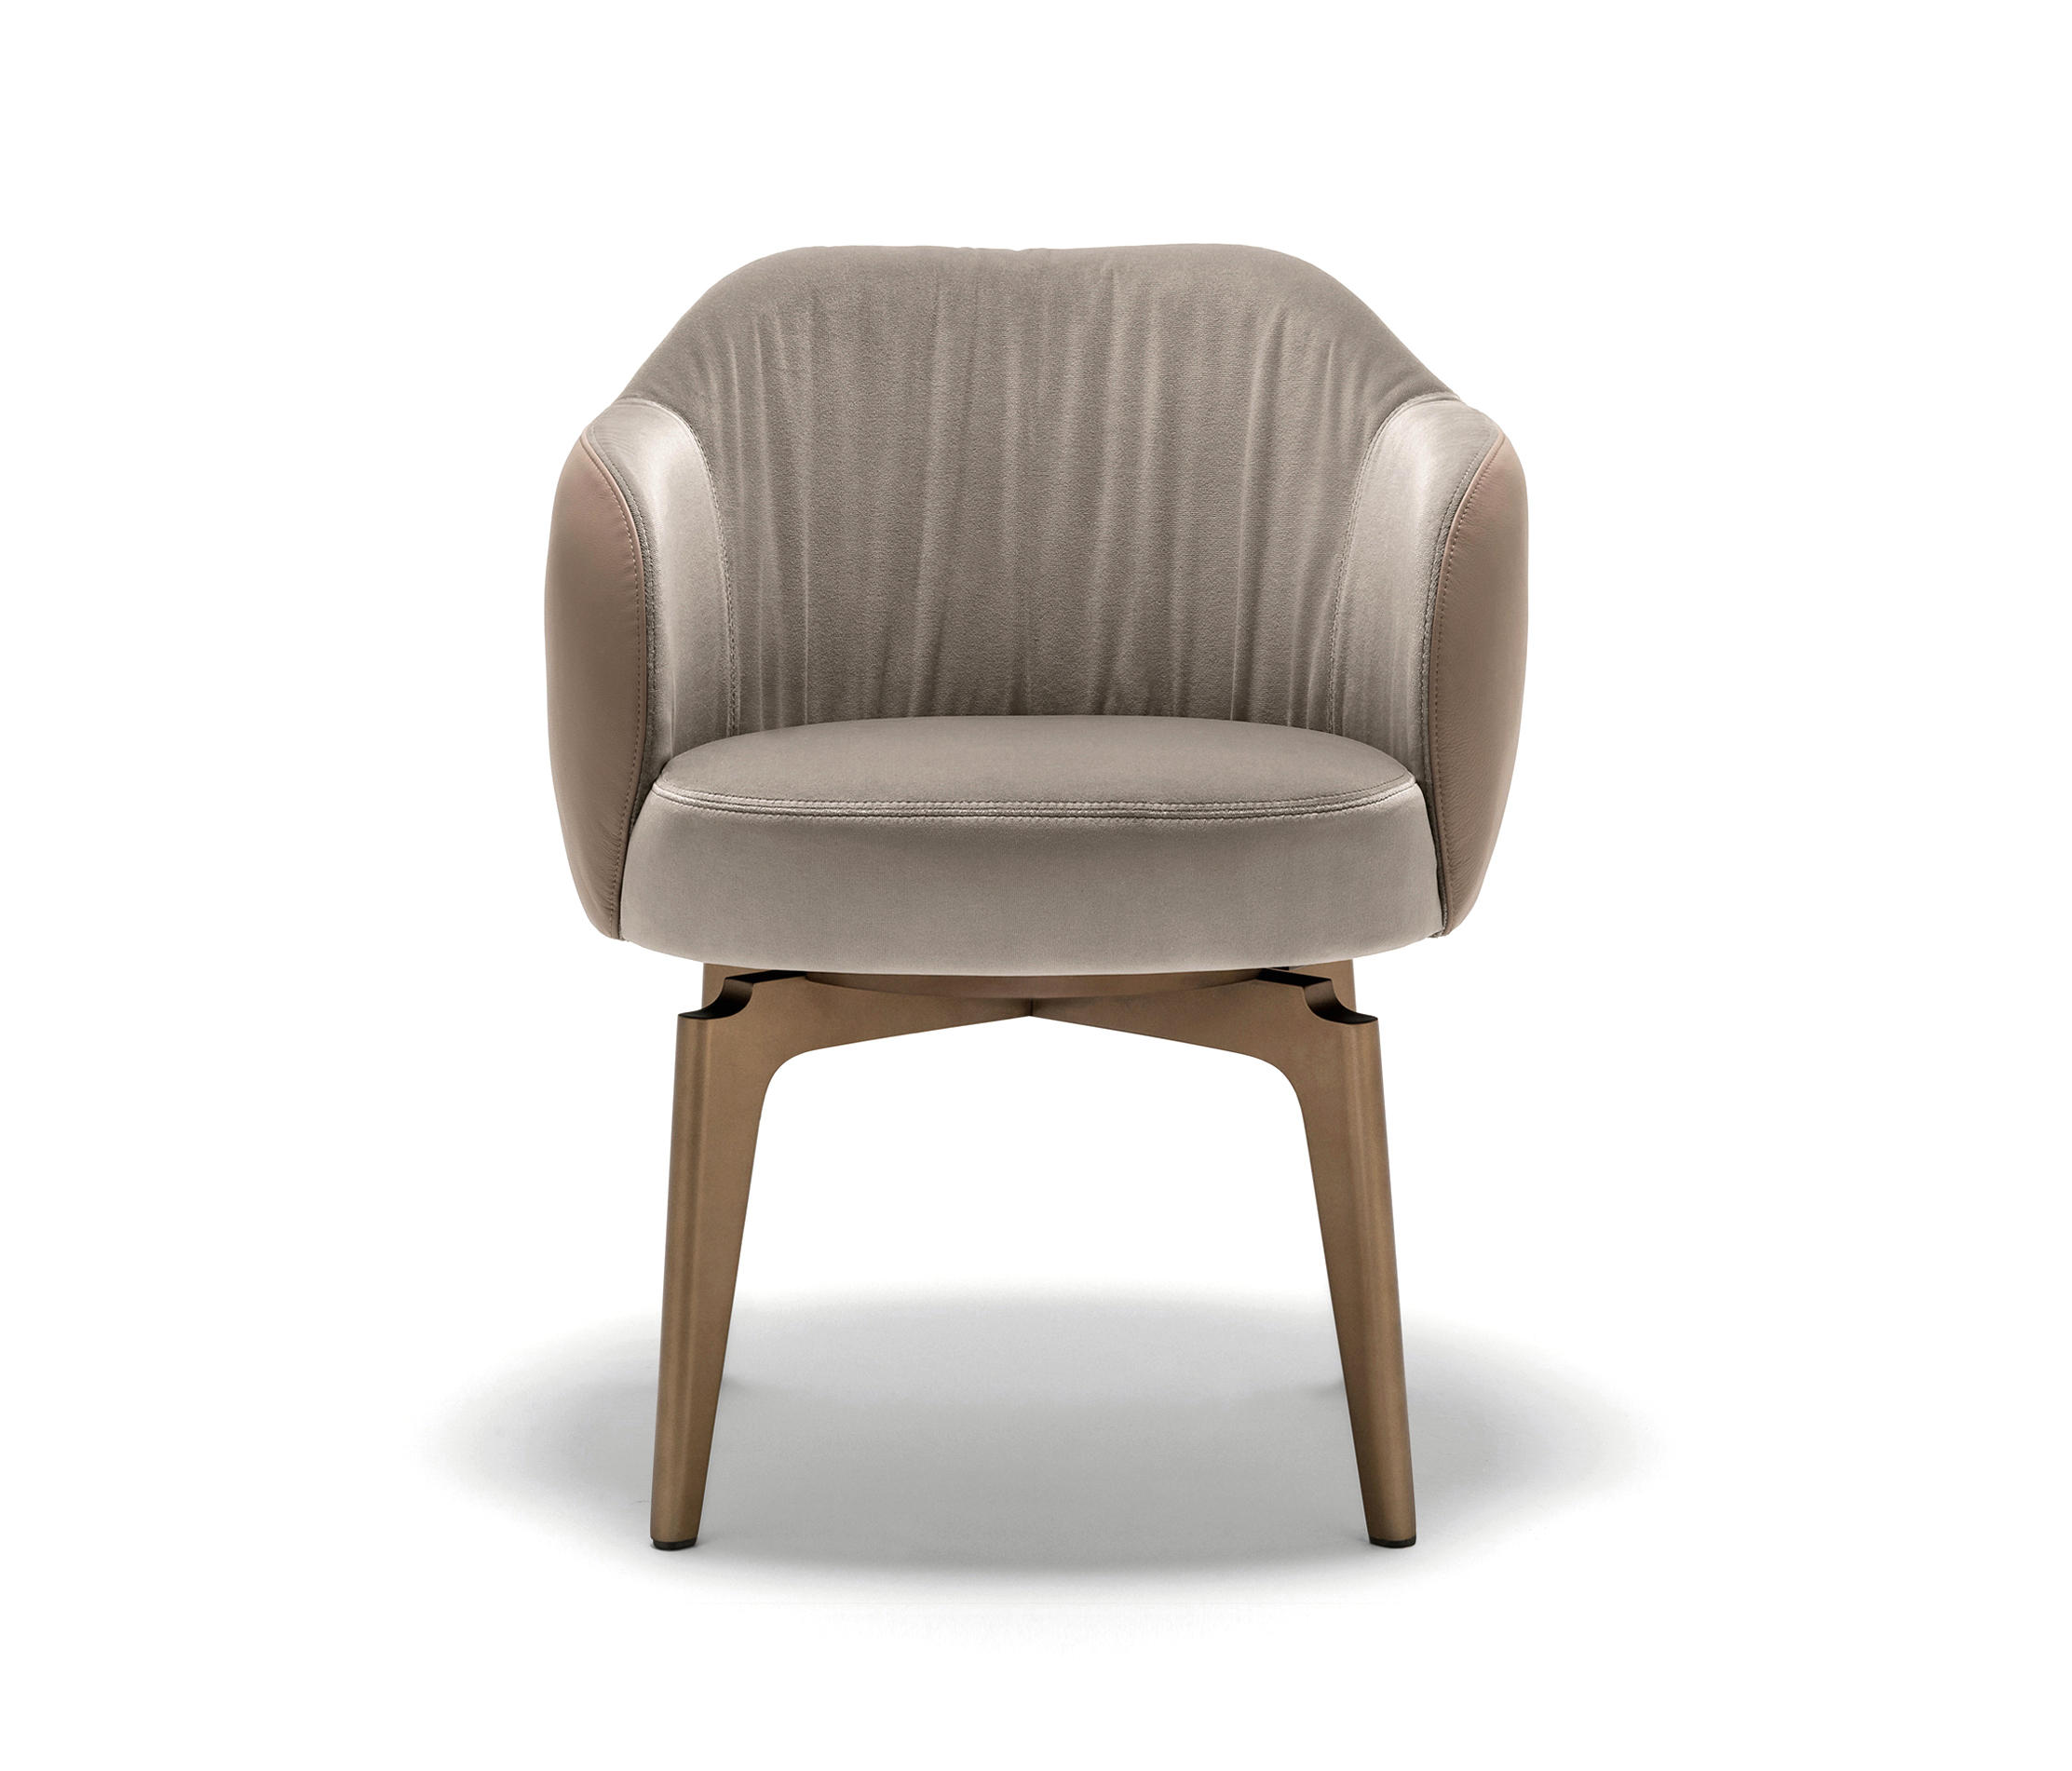 Small Arm Chairs Elisa Small Armchair Chairs From Giorgetti Architonic